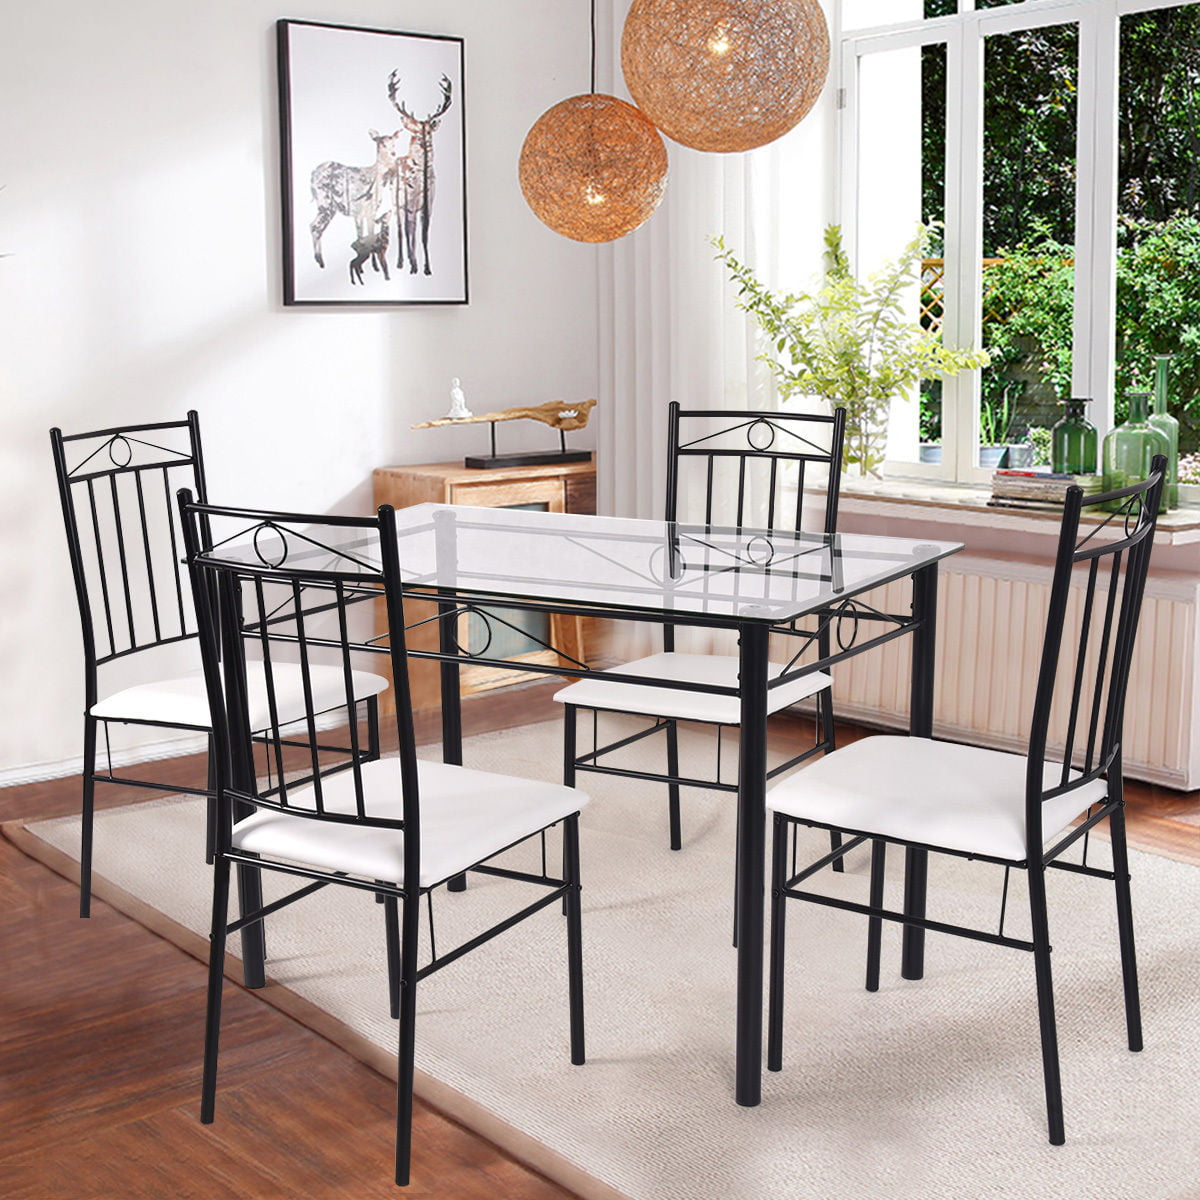 Costway 5 Piece Dining Set Glass Metal Table and 4 Chairs Kitchen ...